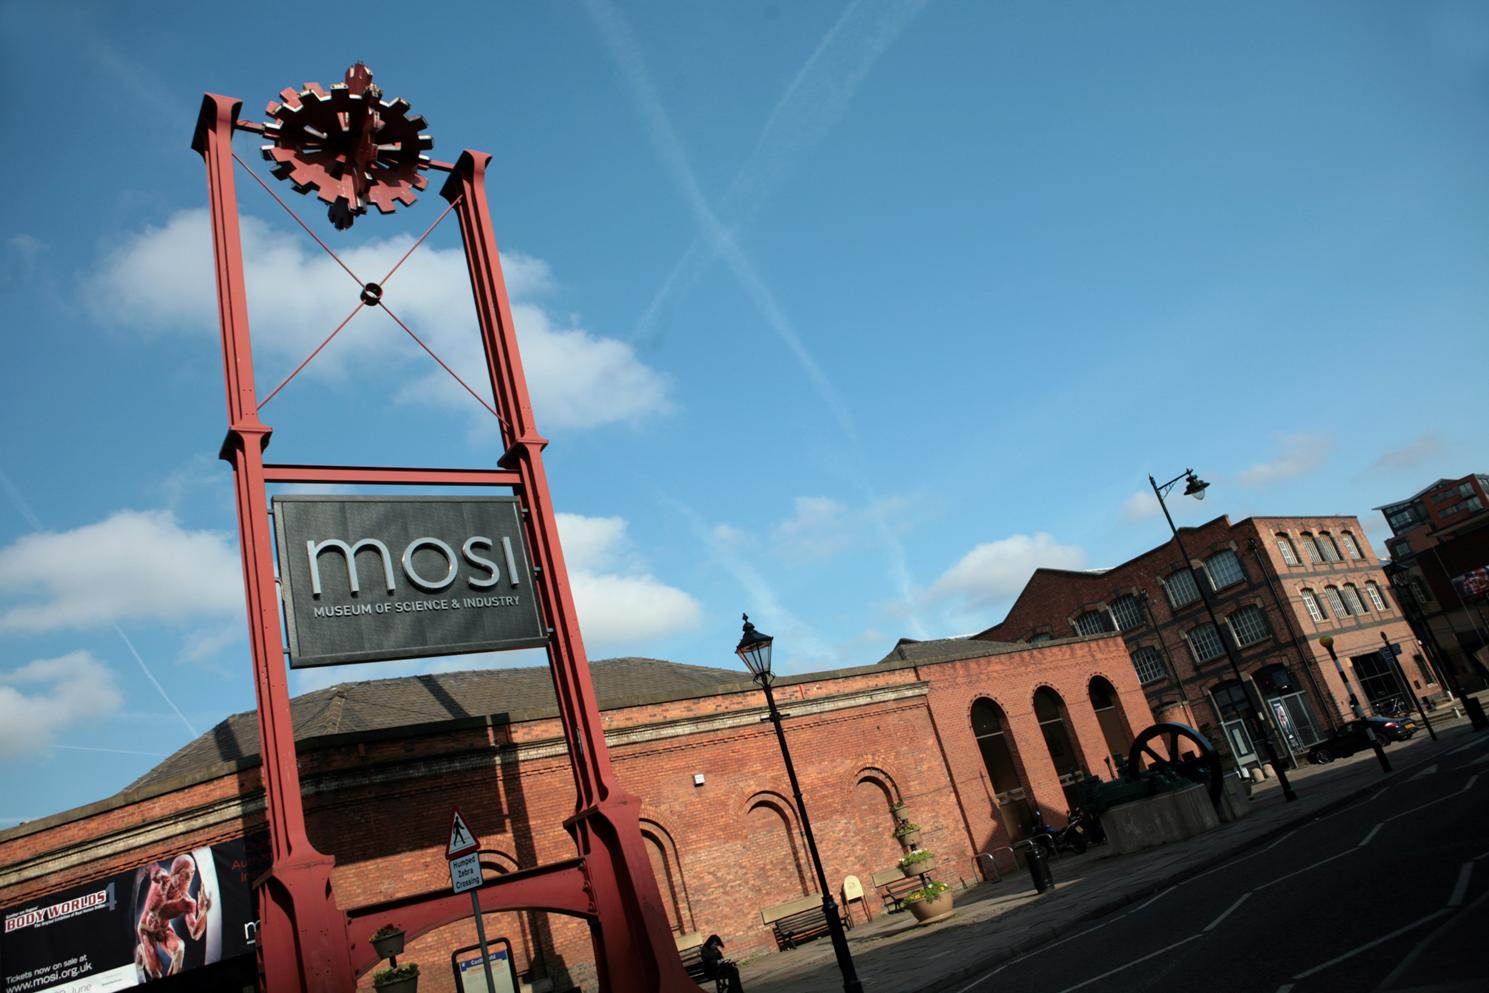 Museum of Science & Industry, Manchester